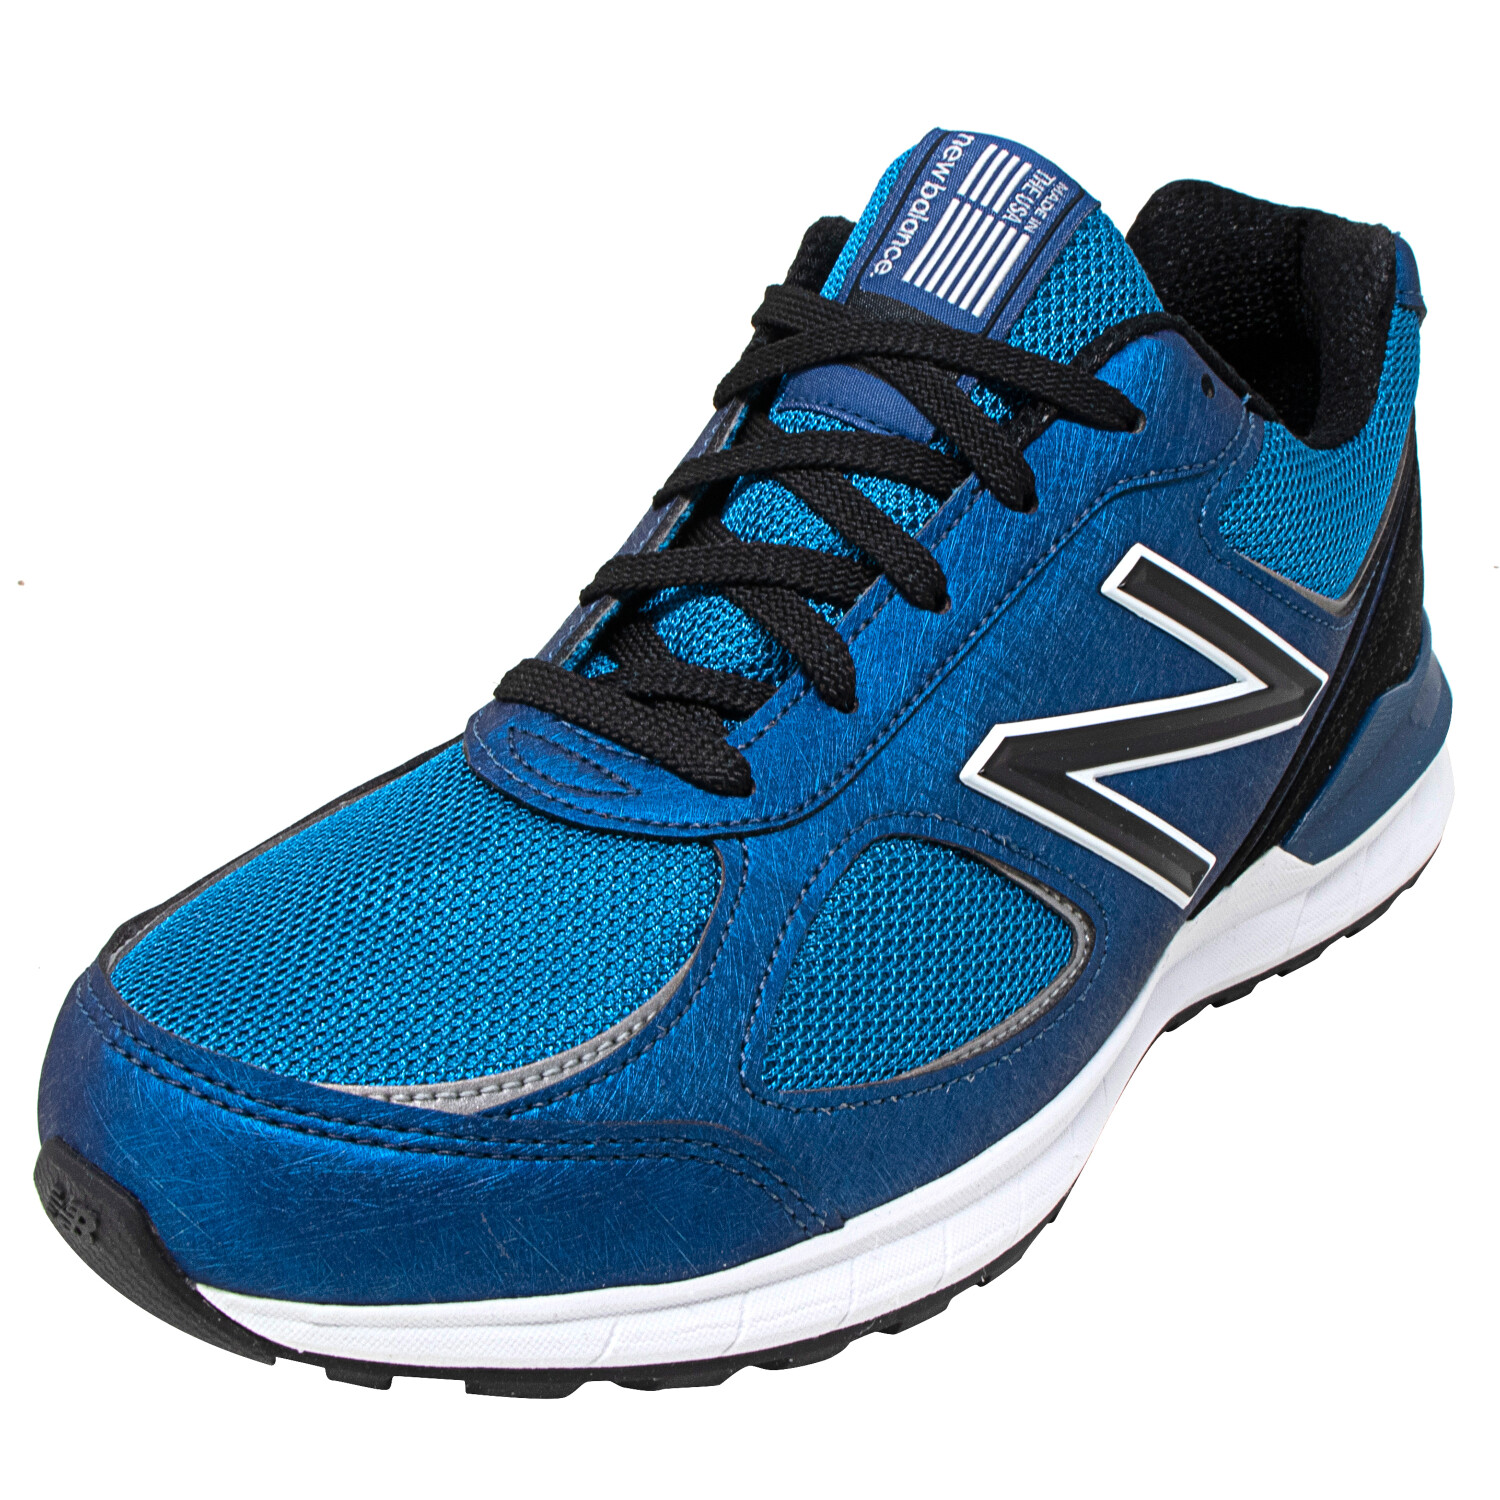 New Balance Men's M770 Bb2 Ankle-High Suede Sneaker - 7M